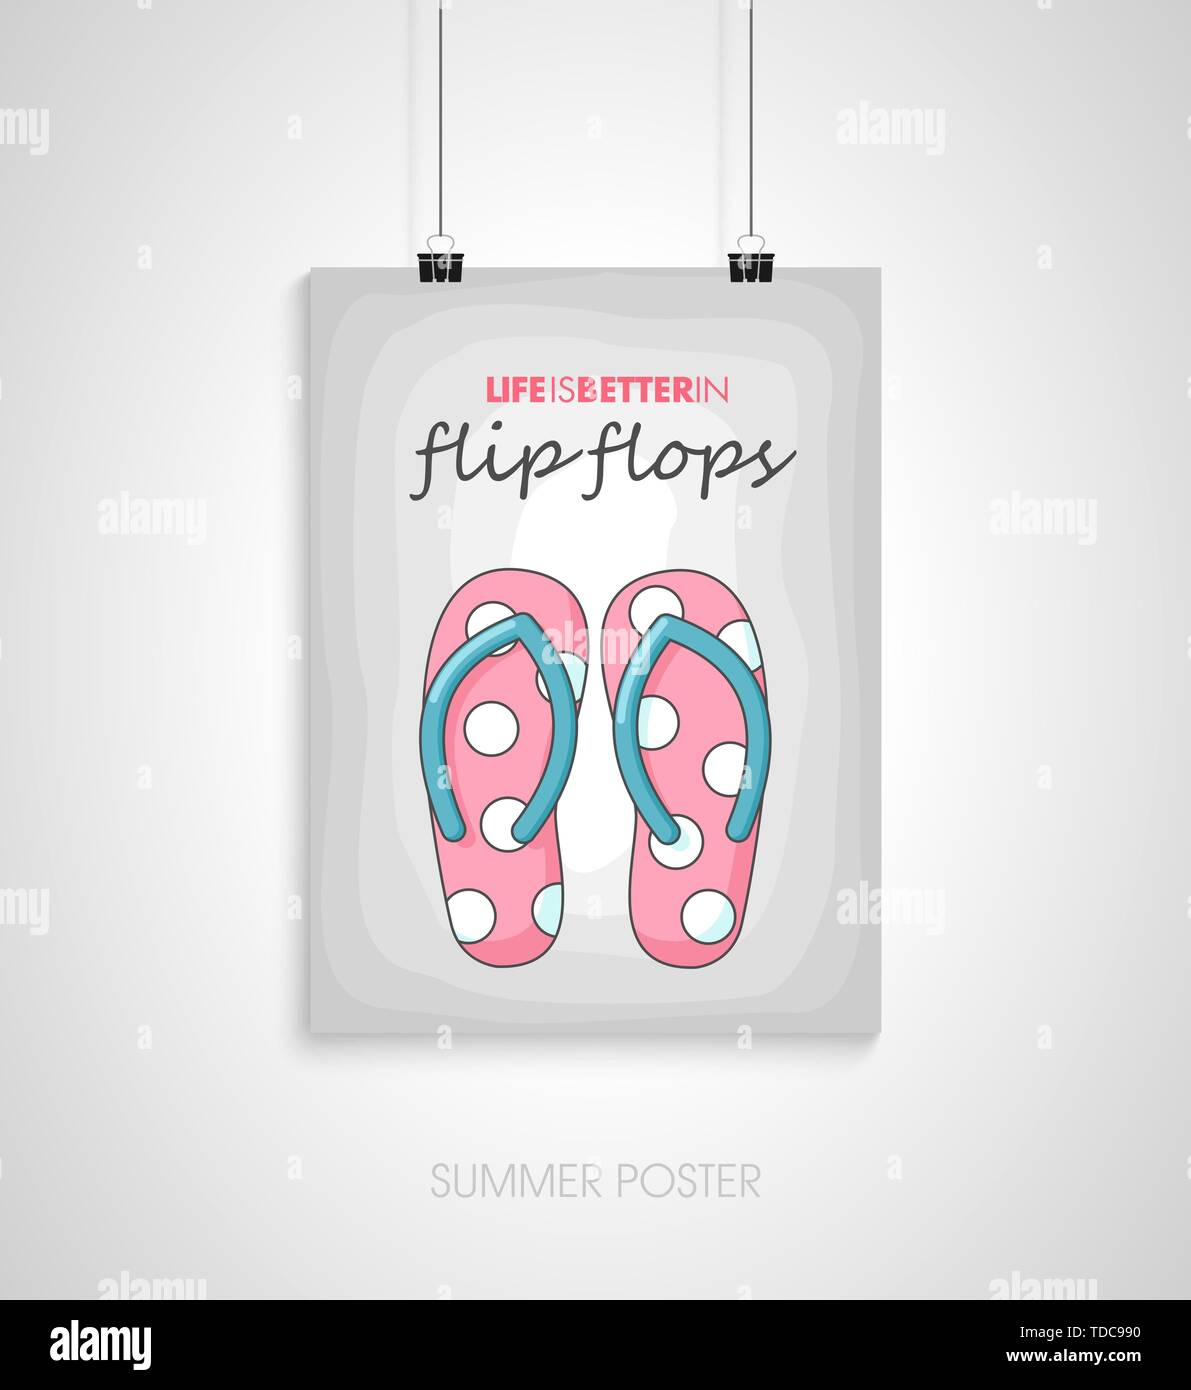 Summer flyer card. Life is better in flip flops. Journal cards. Vector illustrations for t-shirt, poster prints. Holiday, travel, vacation theme - Stock Image